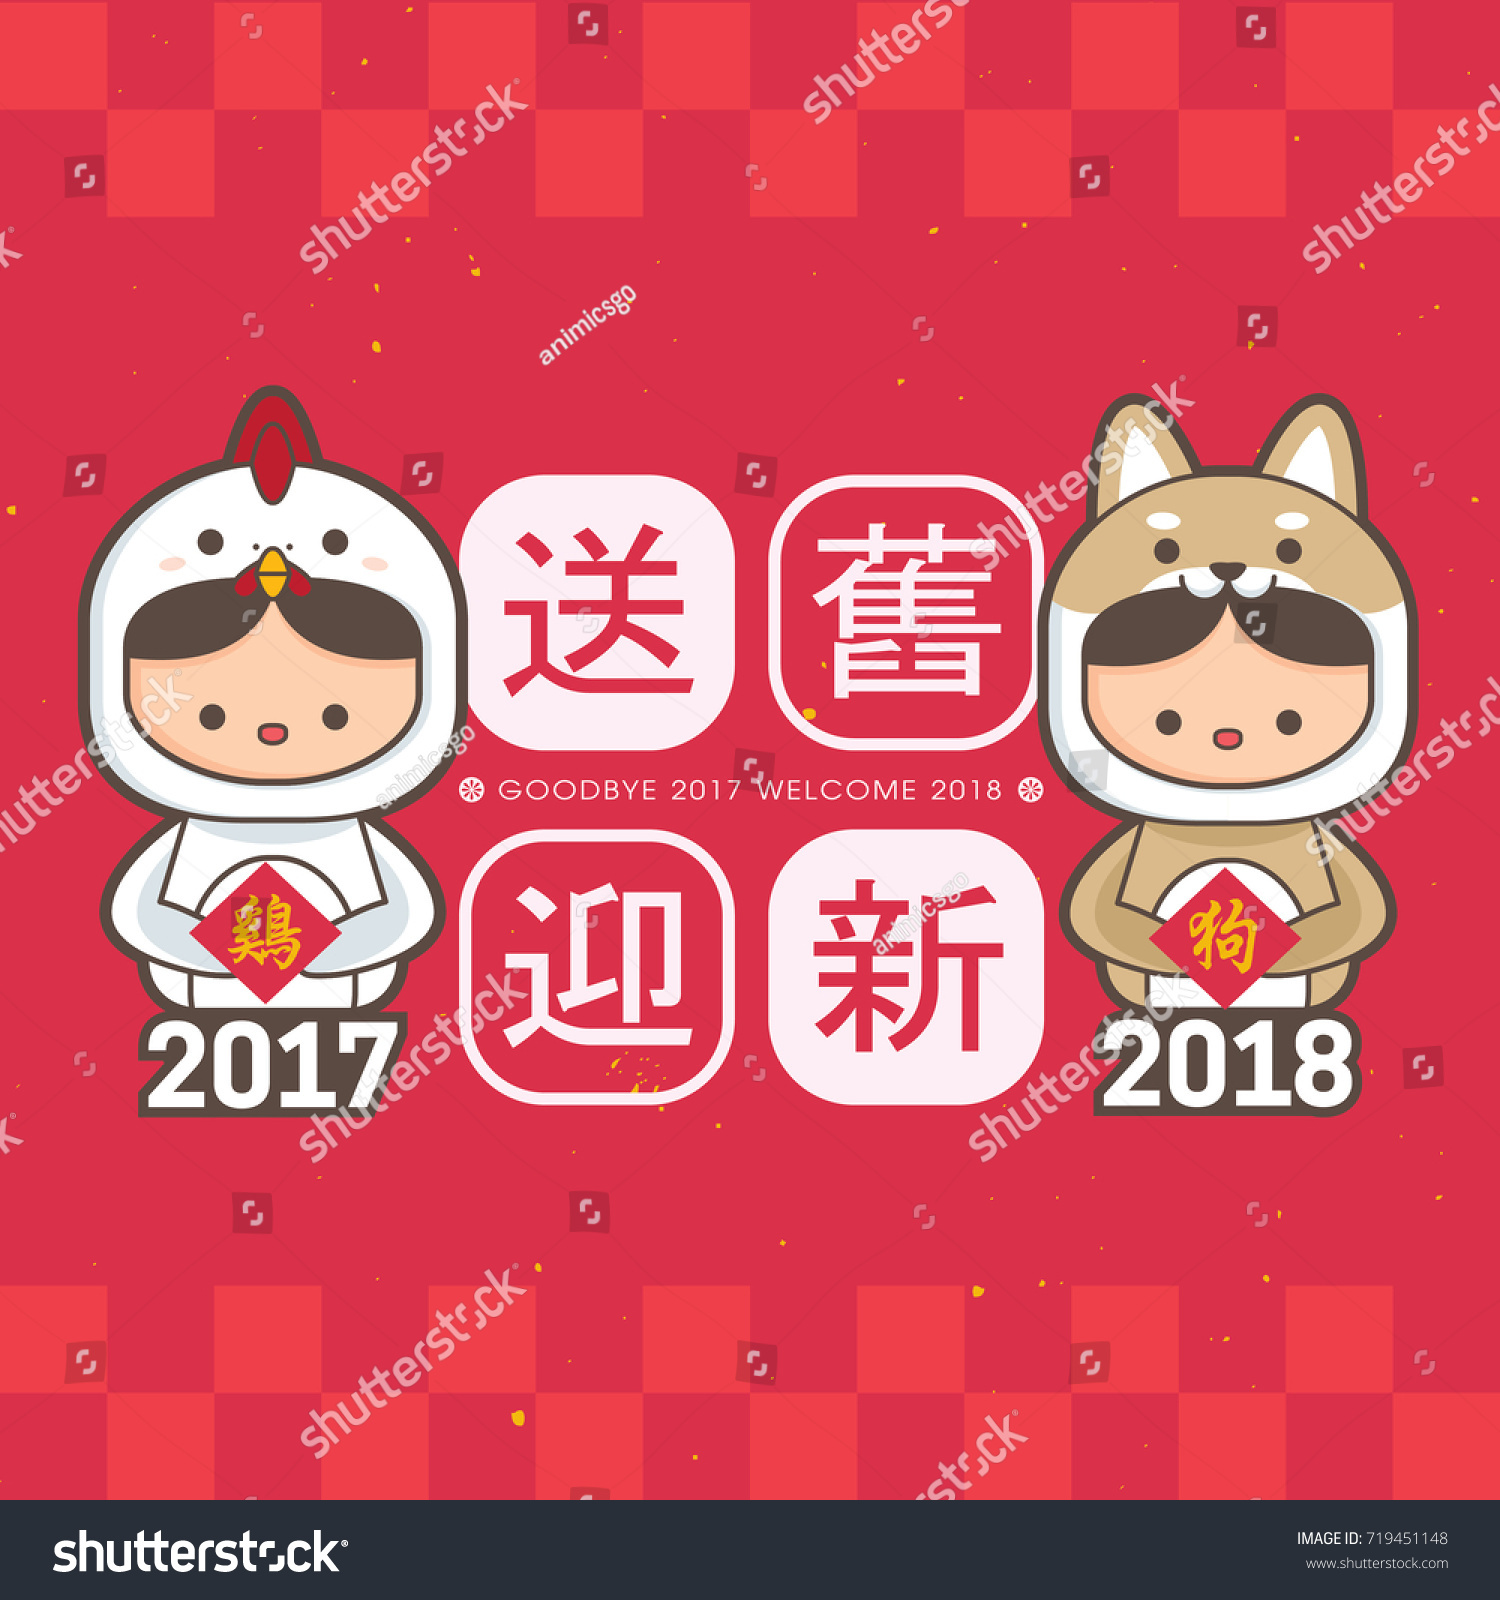 20 Photos Of Chinese New Year 2018 News Images Hattyphoto